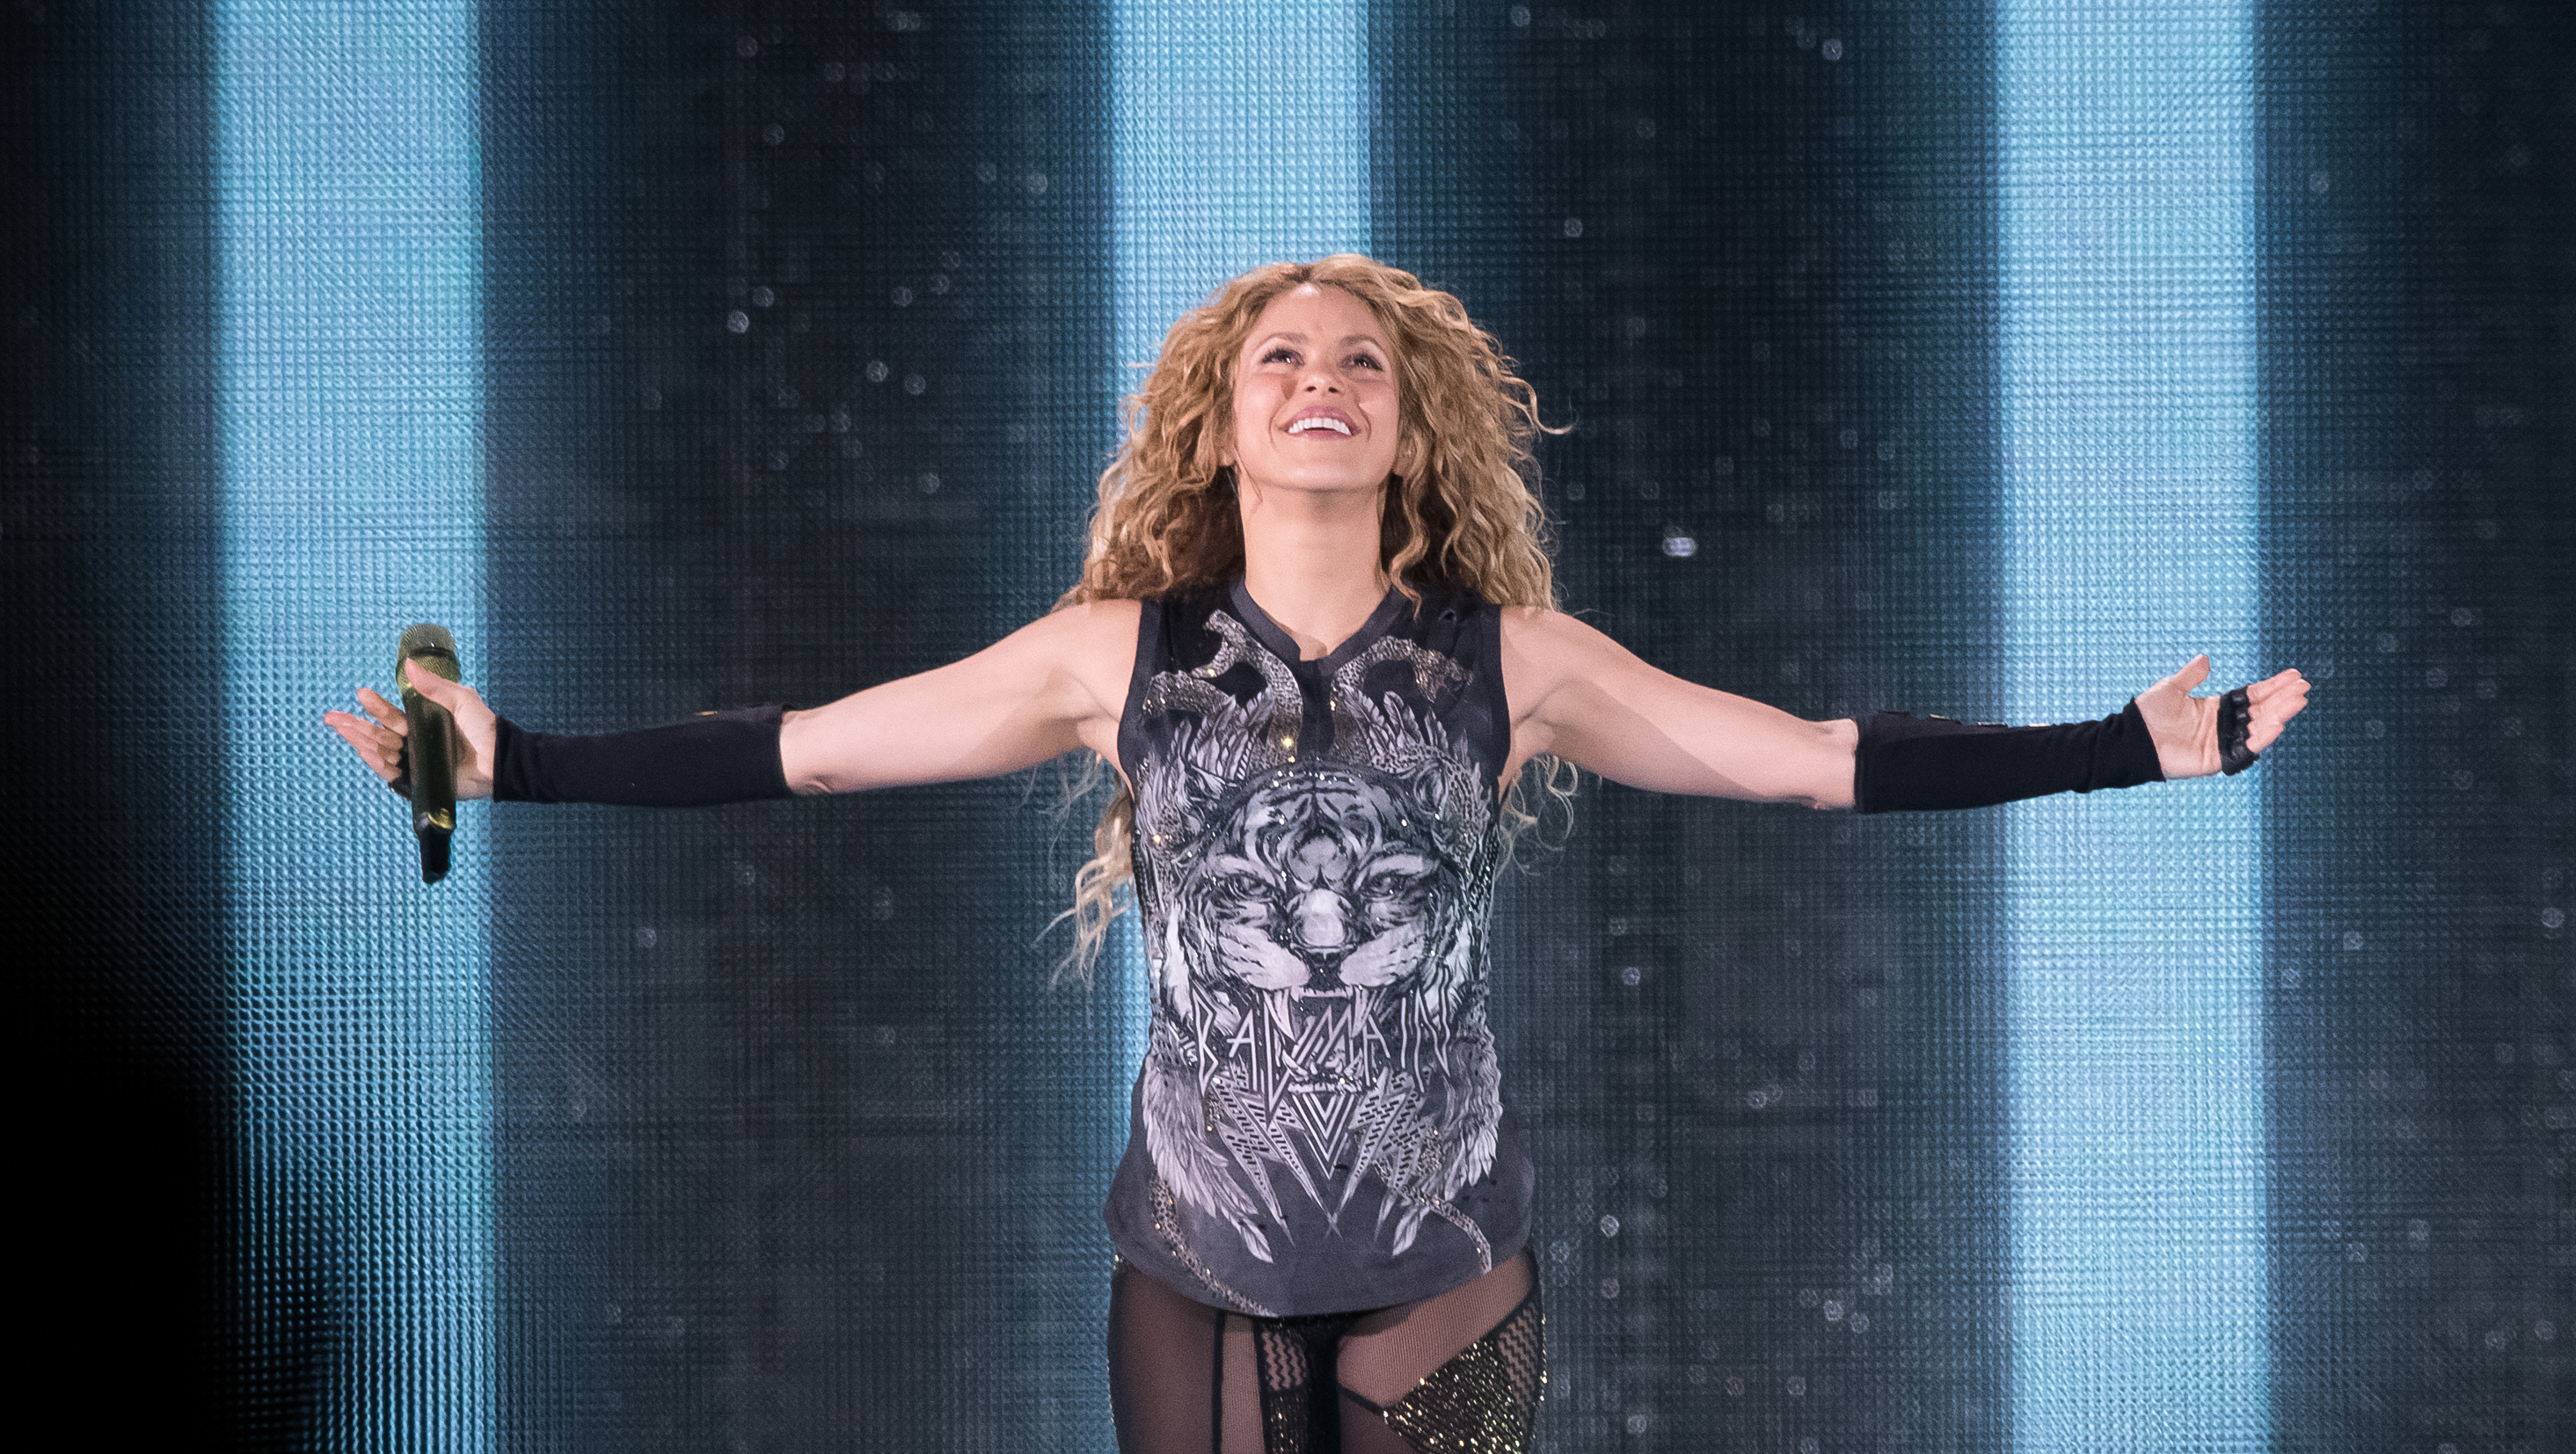 JLo & Shakira Will Headline the 2020 Super Bowl Halftime Show